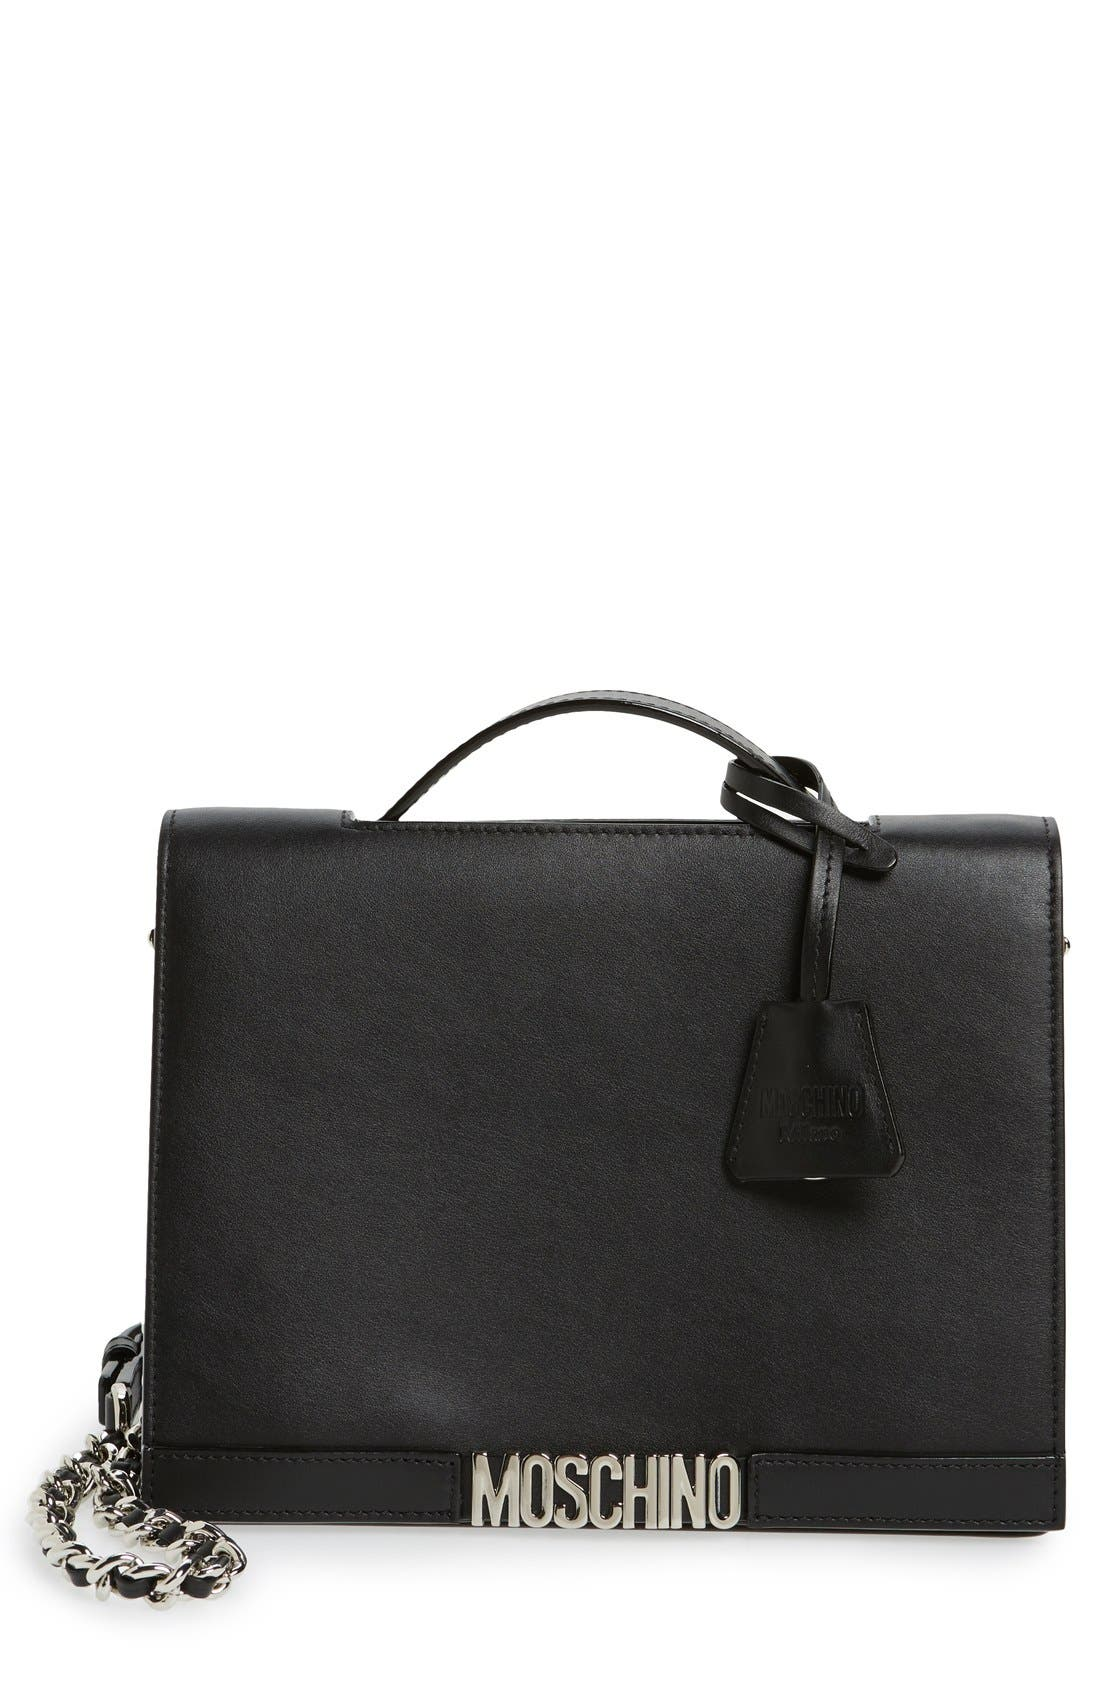 MOSCHINO Top Handle Leather Crossbody Bag